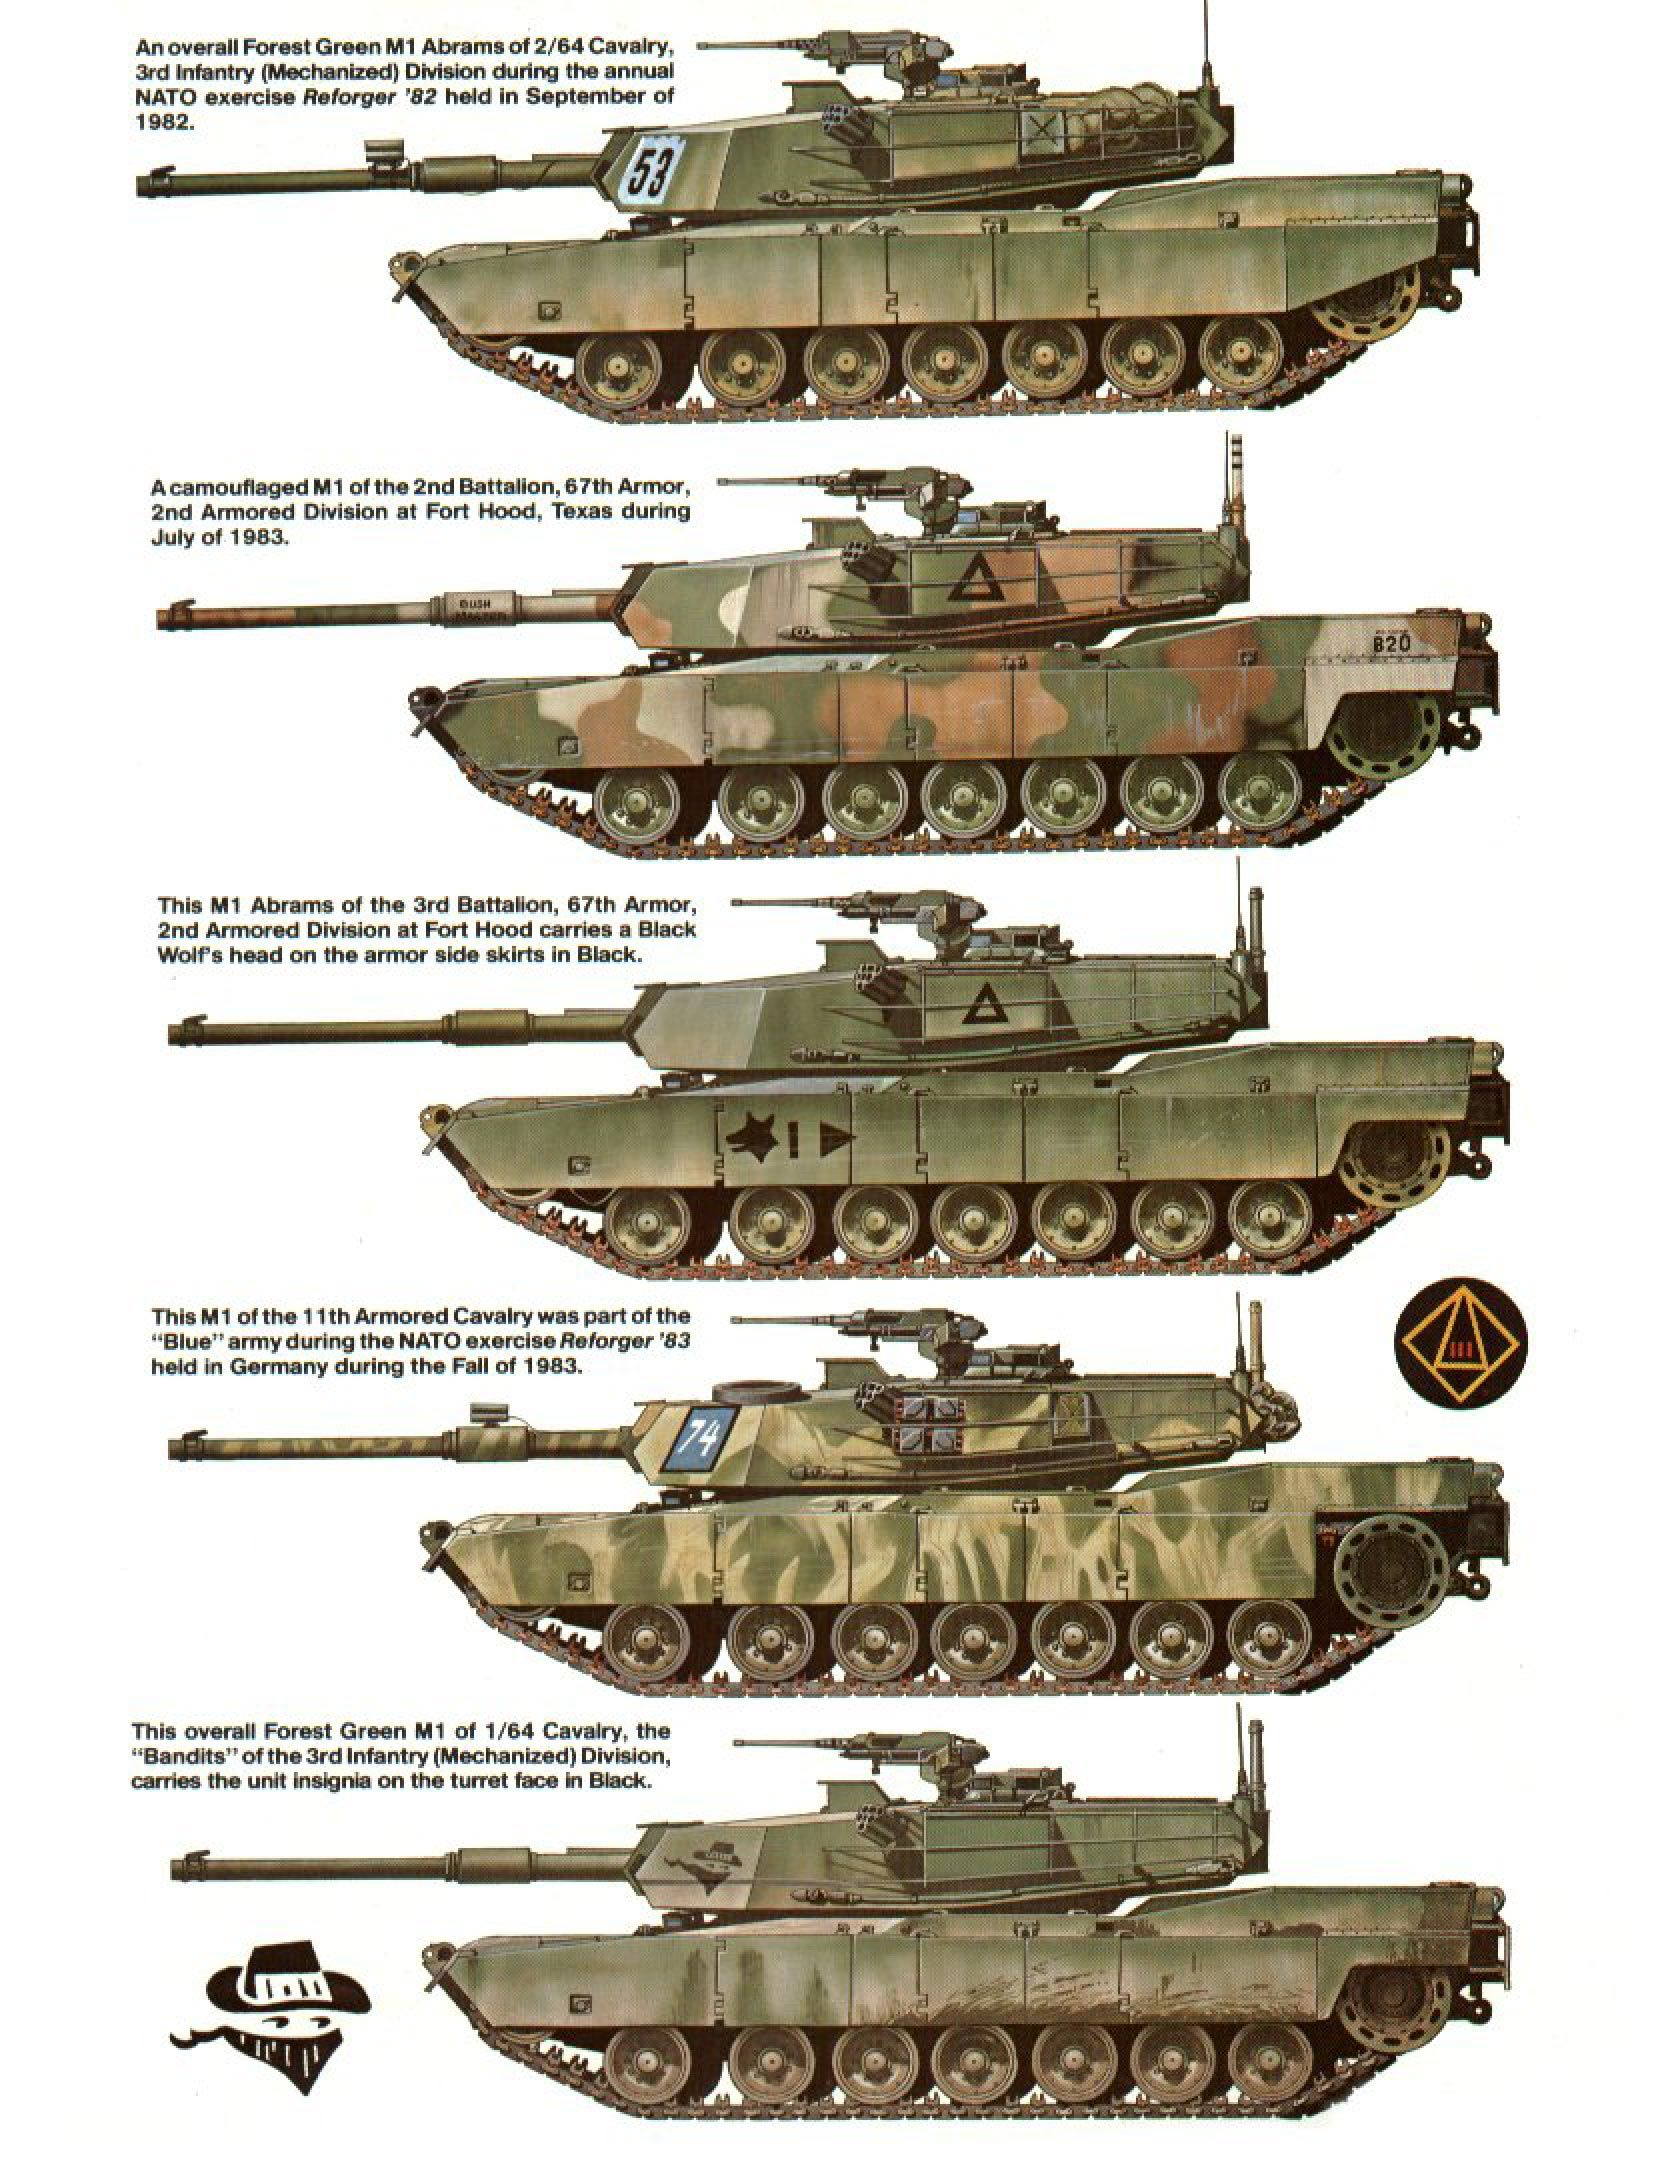 Tank M1 M1a1 Xk1 Abrams Smcars Net Car Blueprints Forum Tanks Military Army Vehicles Military Armor